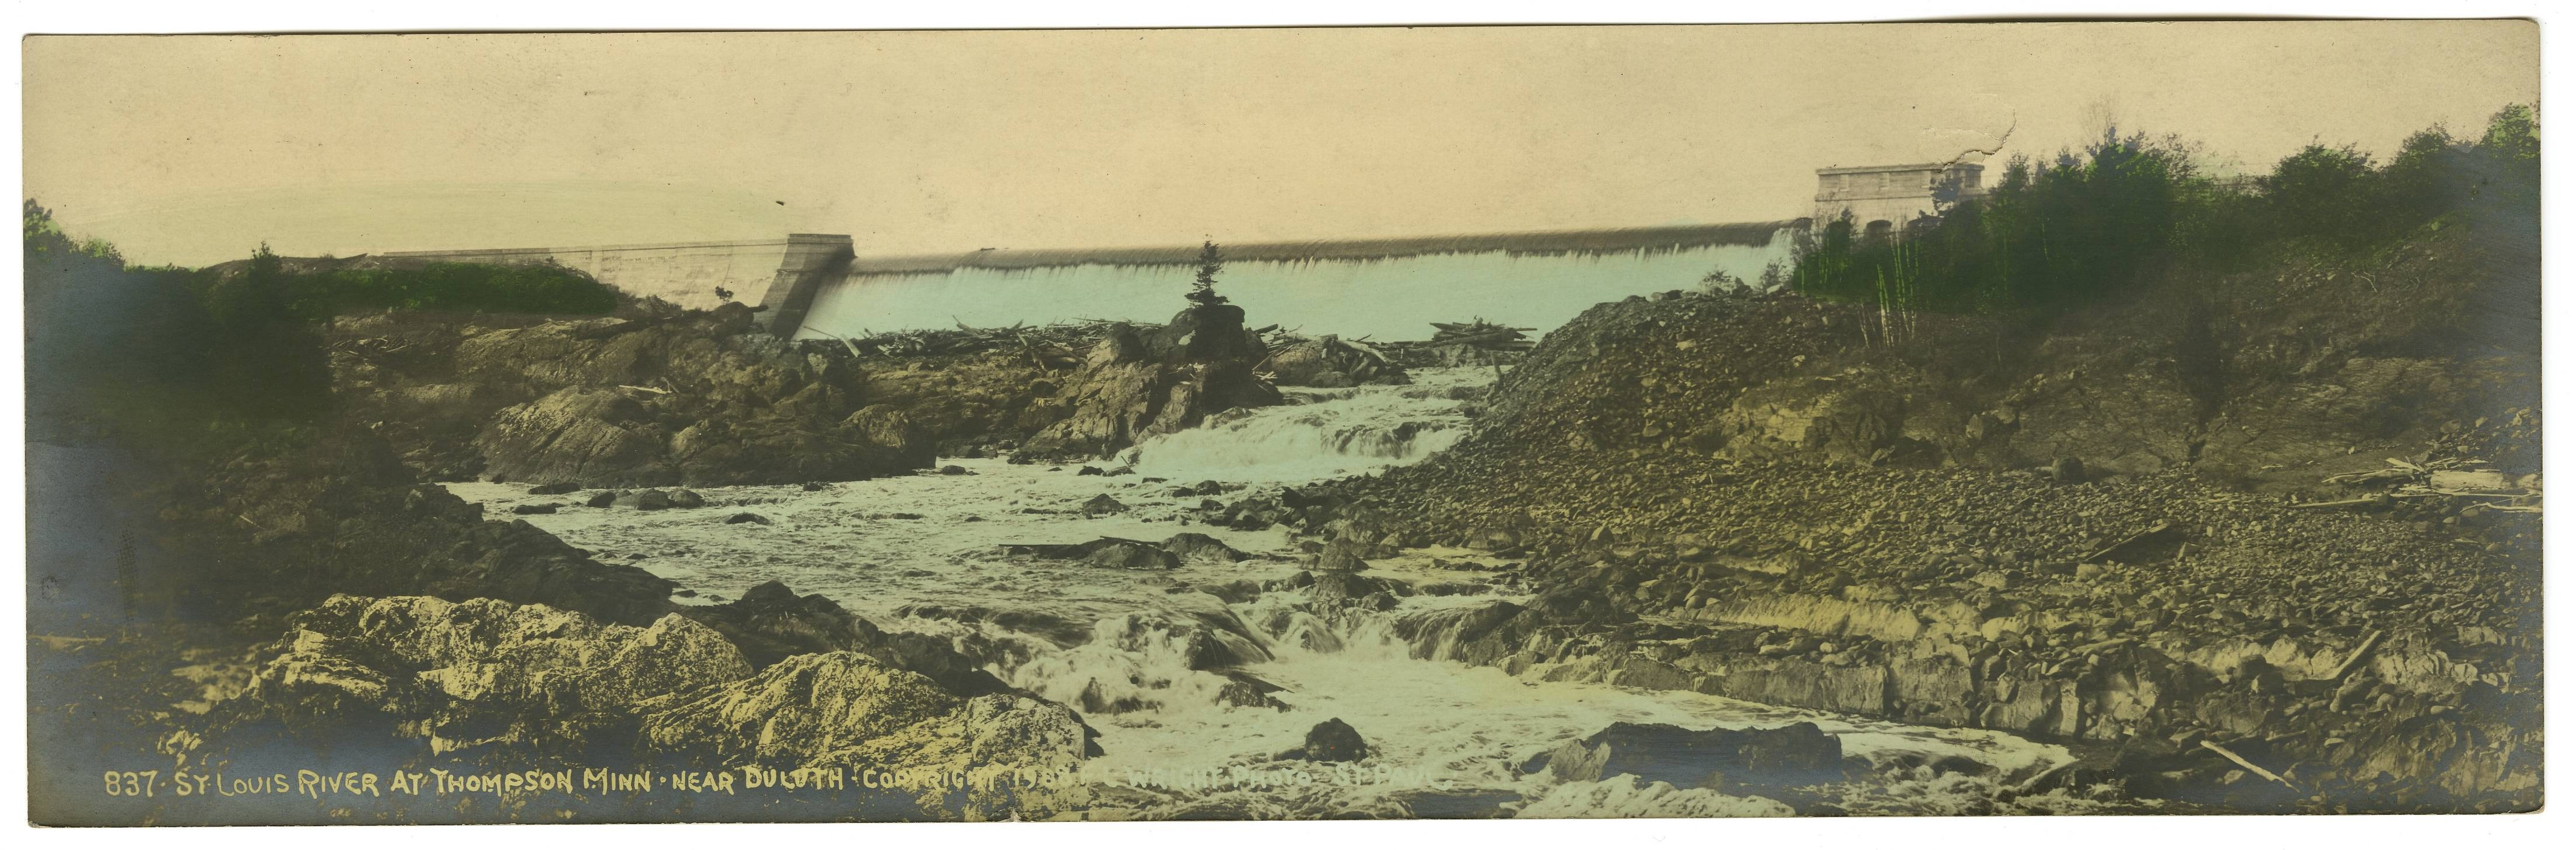 St. Louis River at Thompson, Minnesota, near Duluth, 1908. Digitally enhanced image courtesy of University of Minnesota Duluth, Kathryn A. Martin Library, Northeast Minnesota Historical Center Collections.